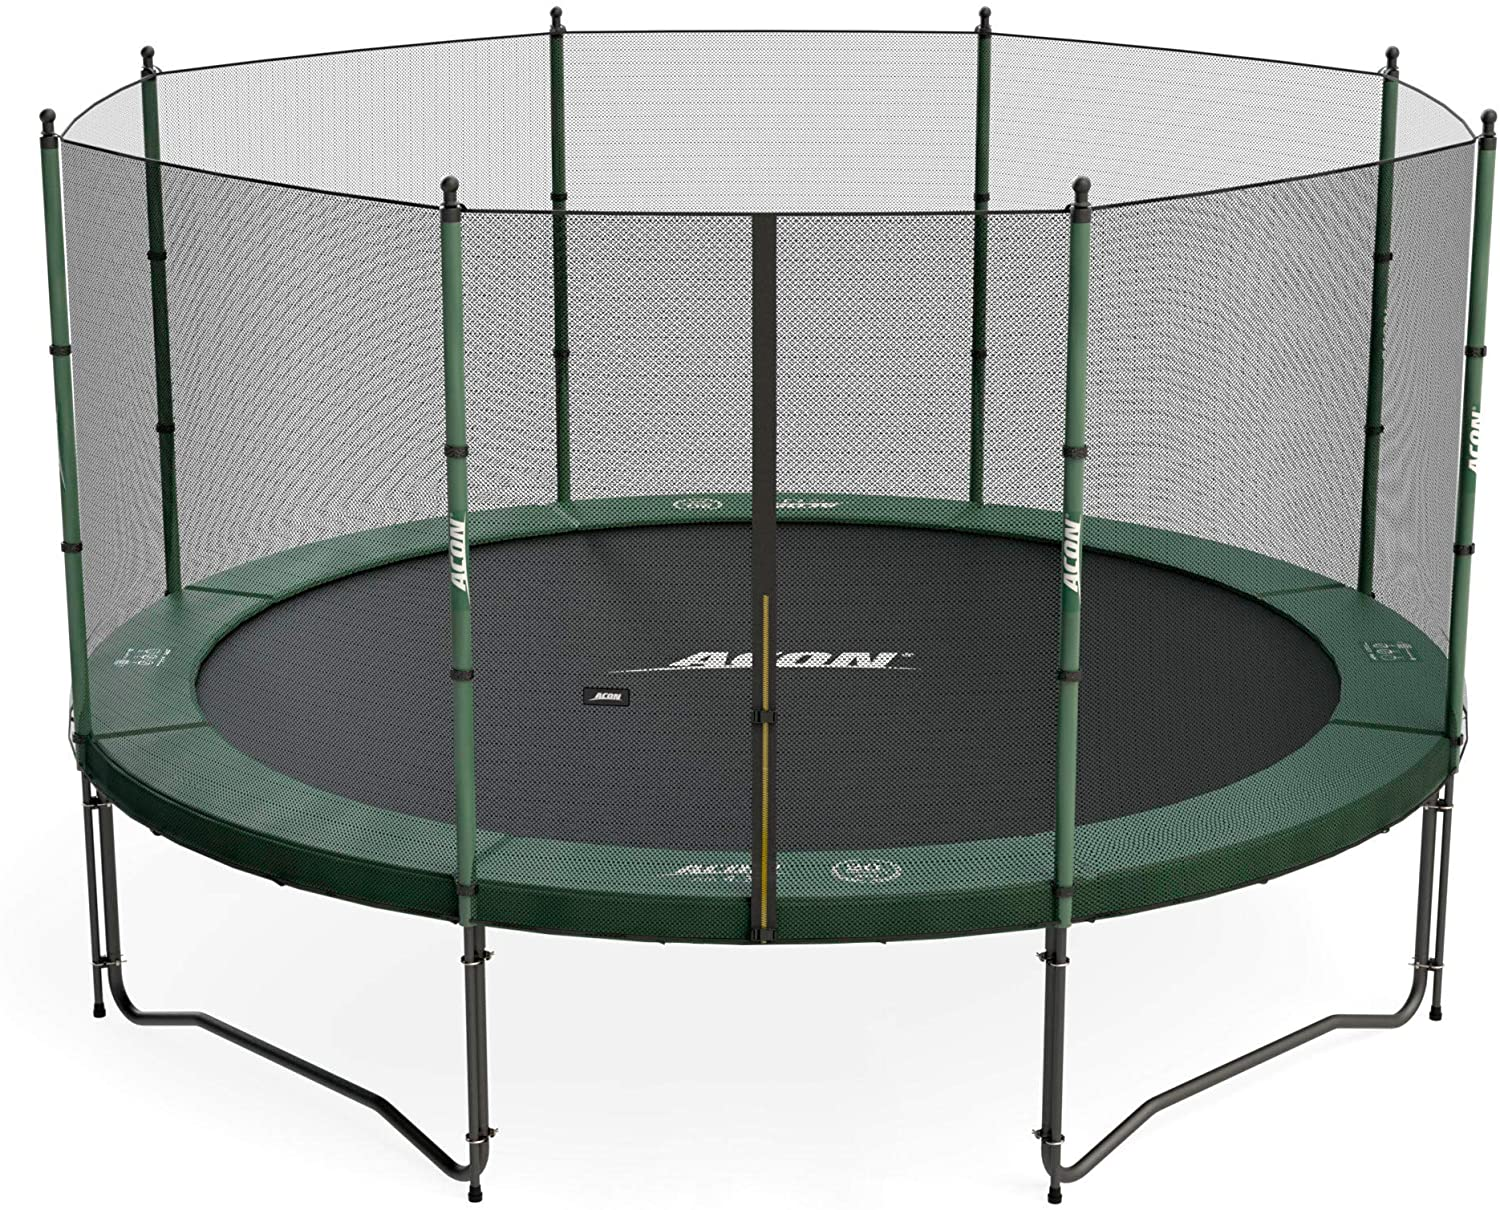 Acon Air 4.3 Trampoline 14ft